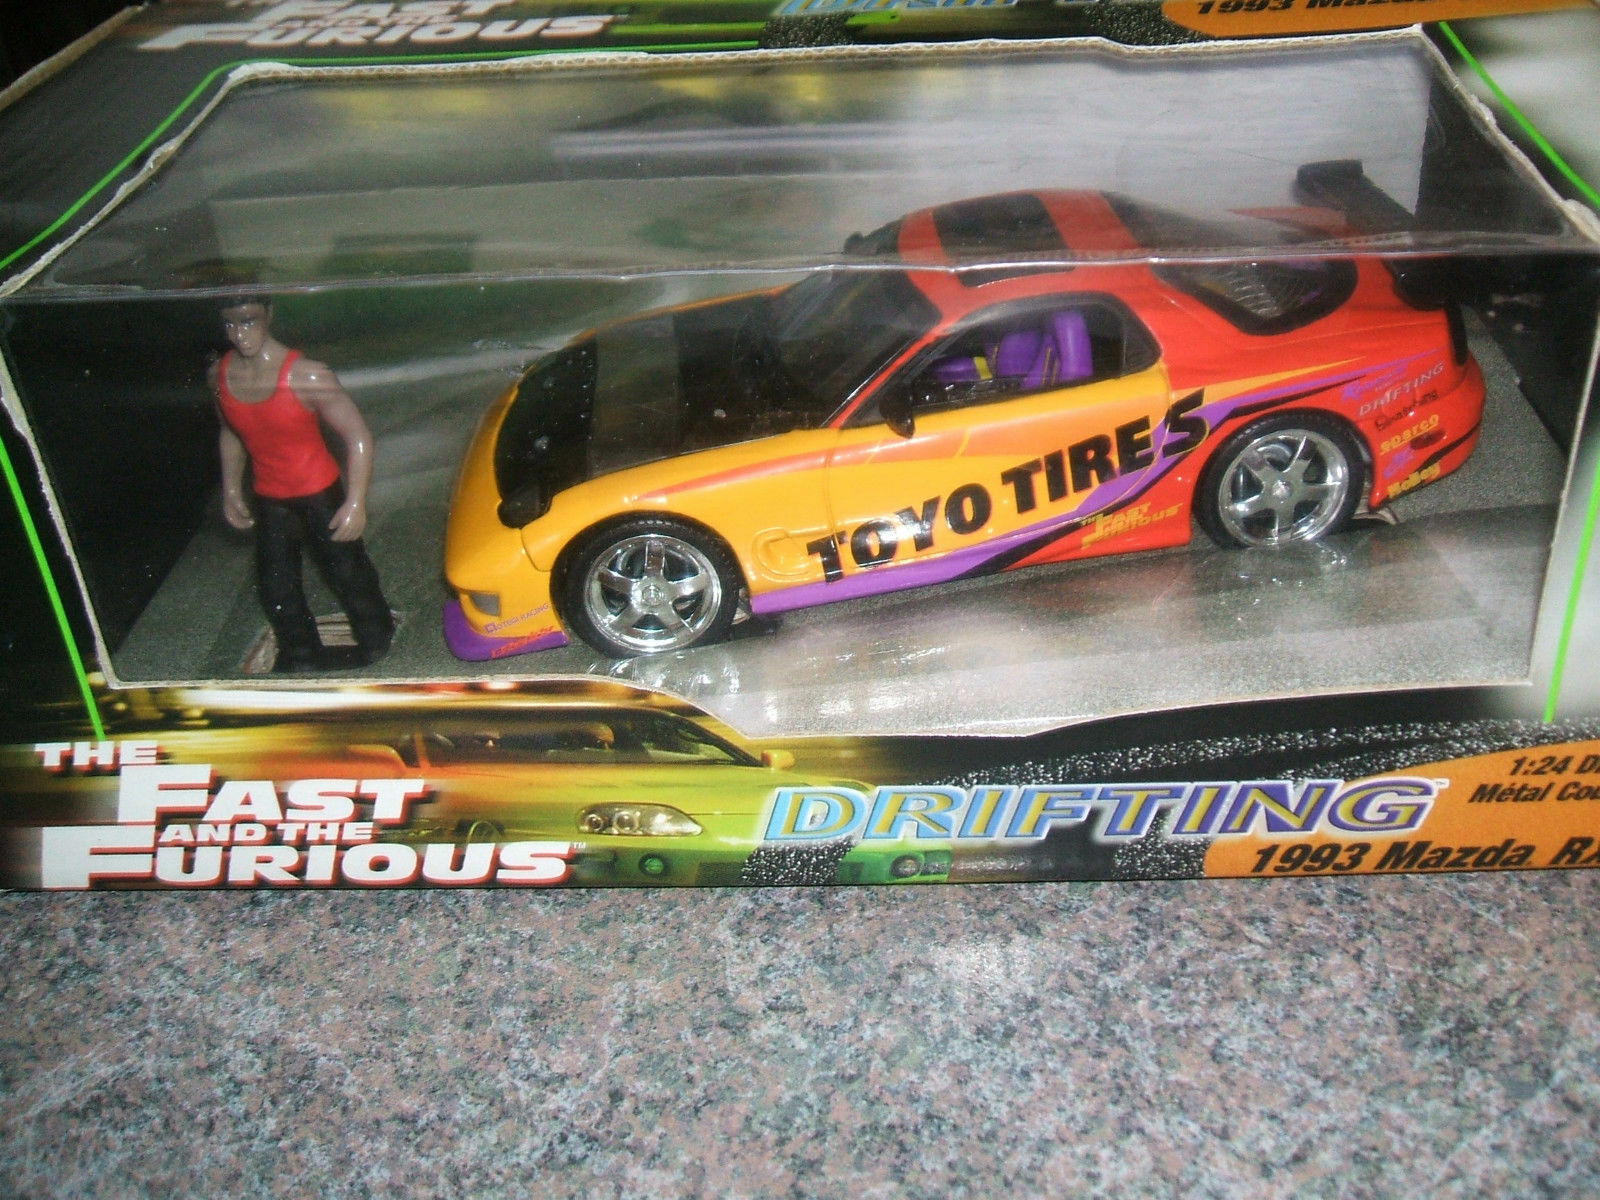 New 1993 MAZDA RX-7 rouge jaune Orange The FAST and the FURIOUS 1 24 Incl. Figure